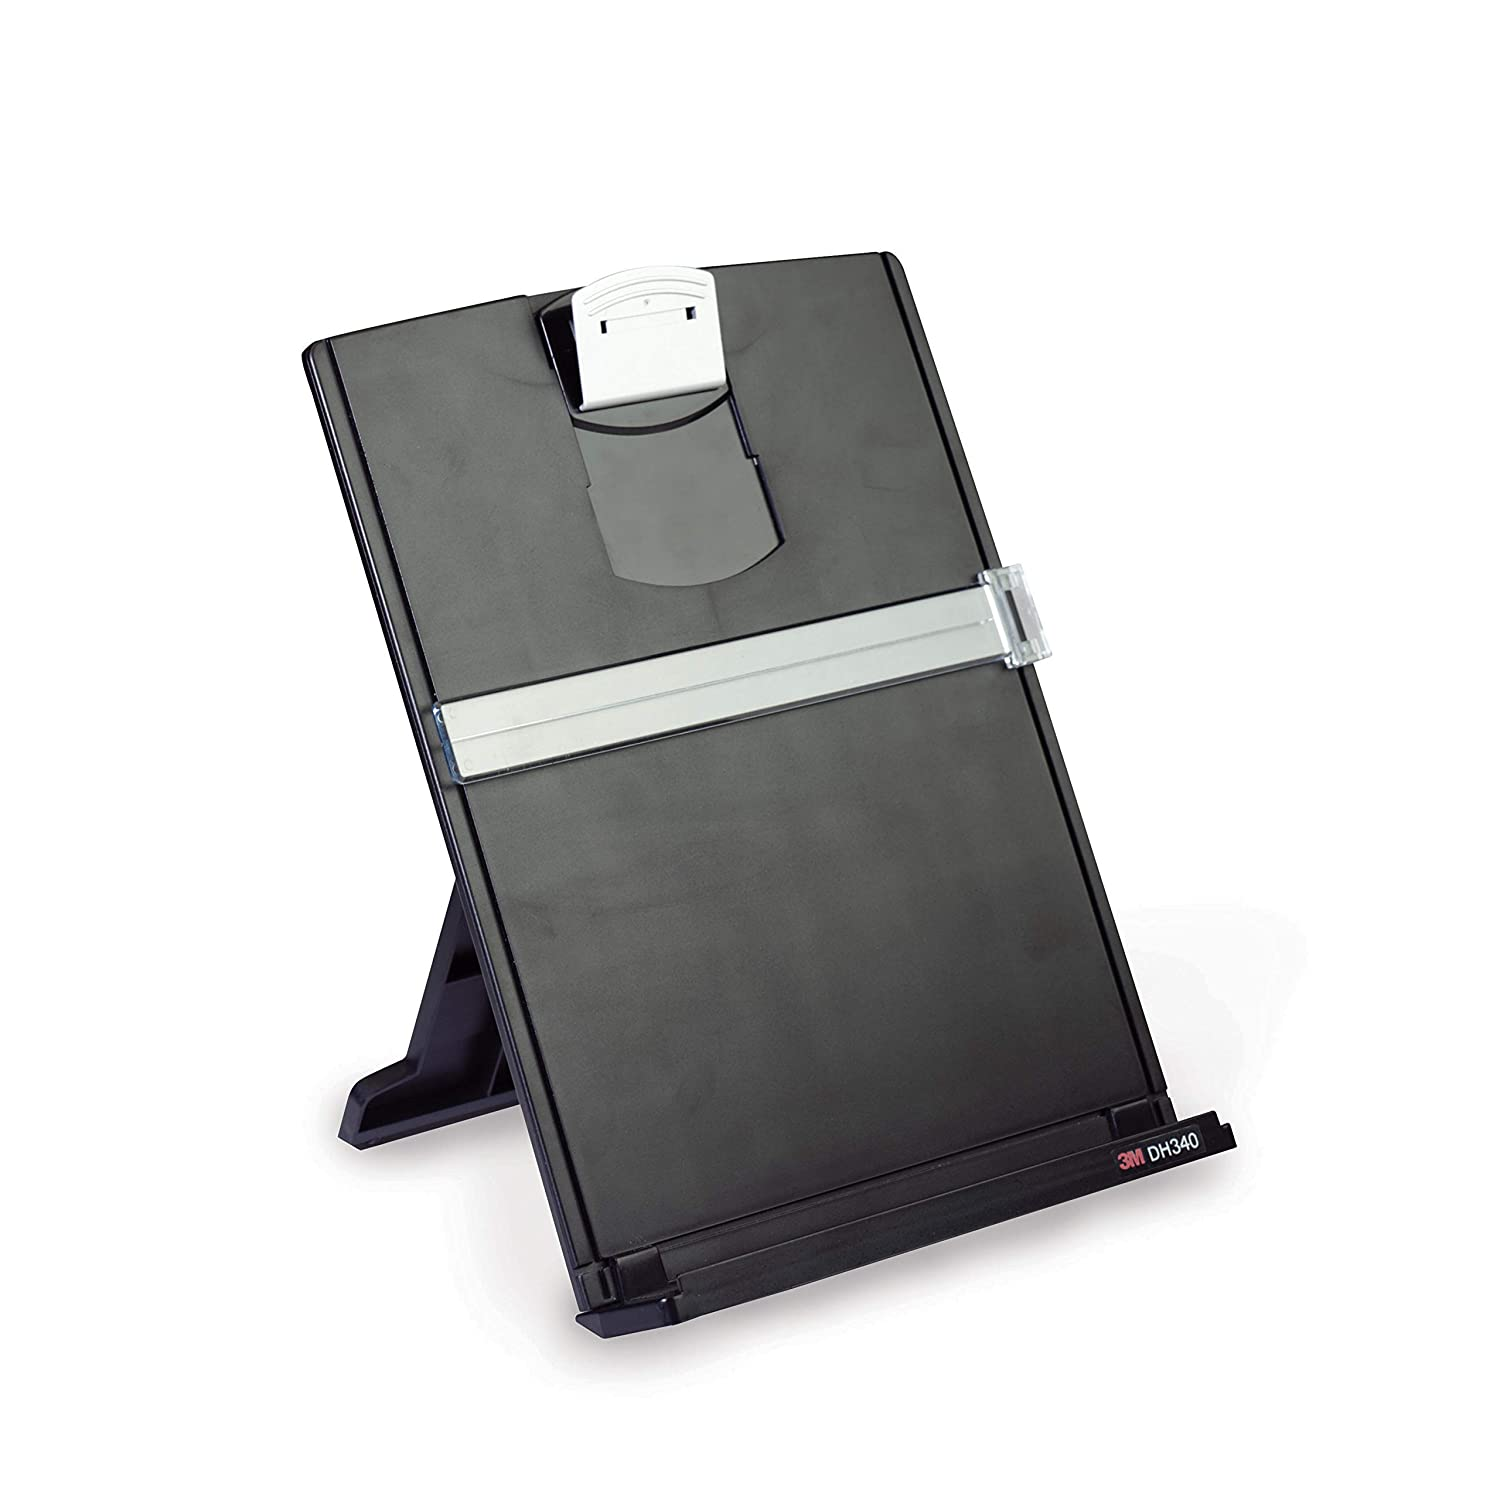 3M Desktop Document Holder with Adjustable Clip, Holds Letter, Legal and A4 Documents, Bottom Ledge Has Lip to Keep up to 150 Sheets Securely in Place, Folds Flat for Storage, Black (DH340MB) 3M Office Products